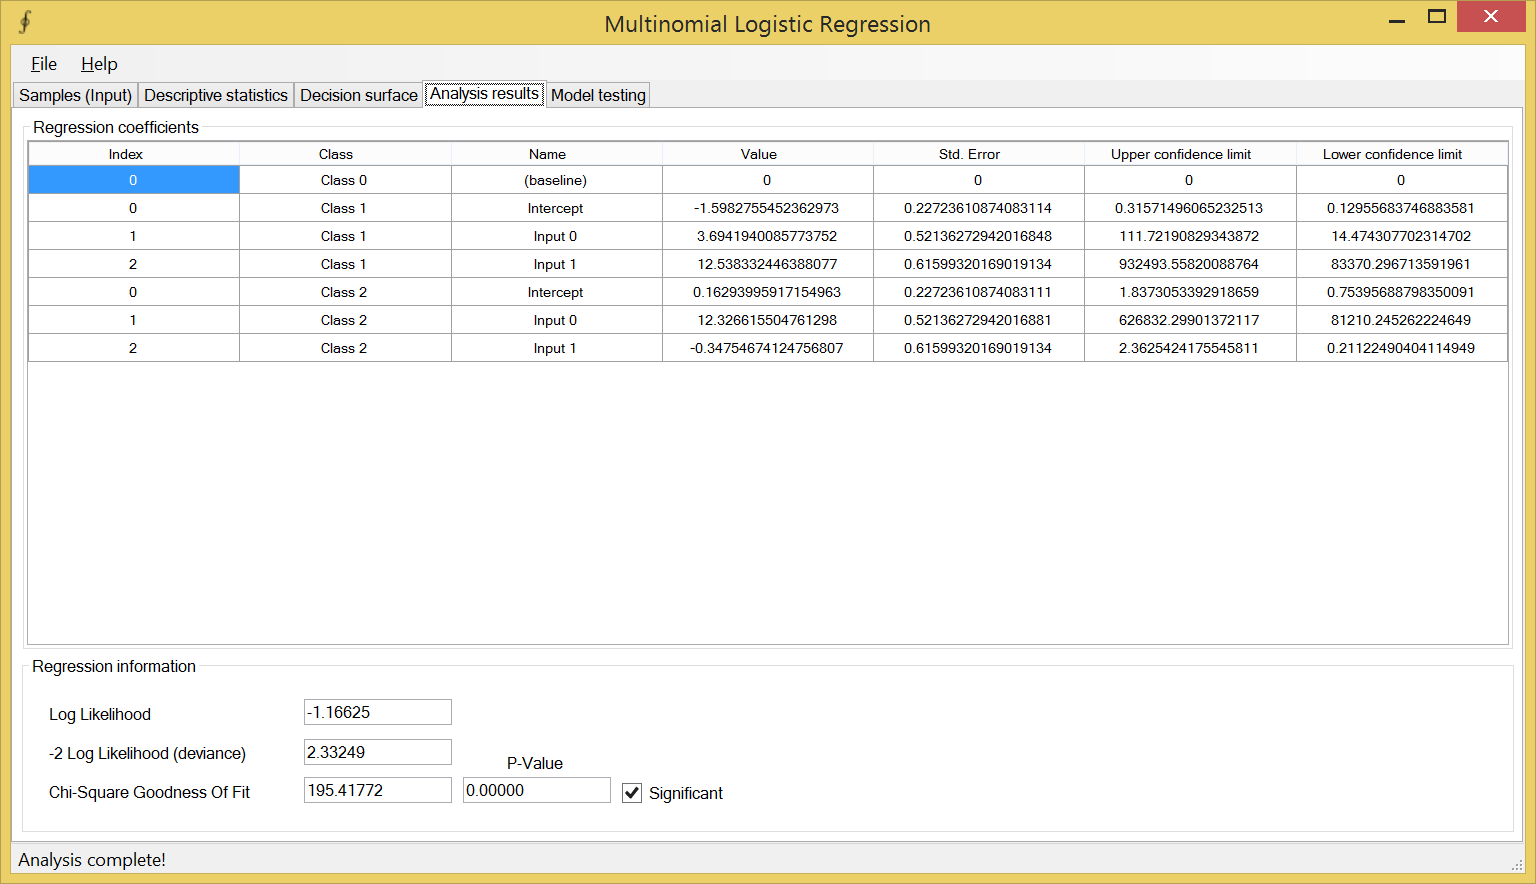 Multinomial Logistic Regression Analysis